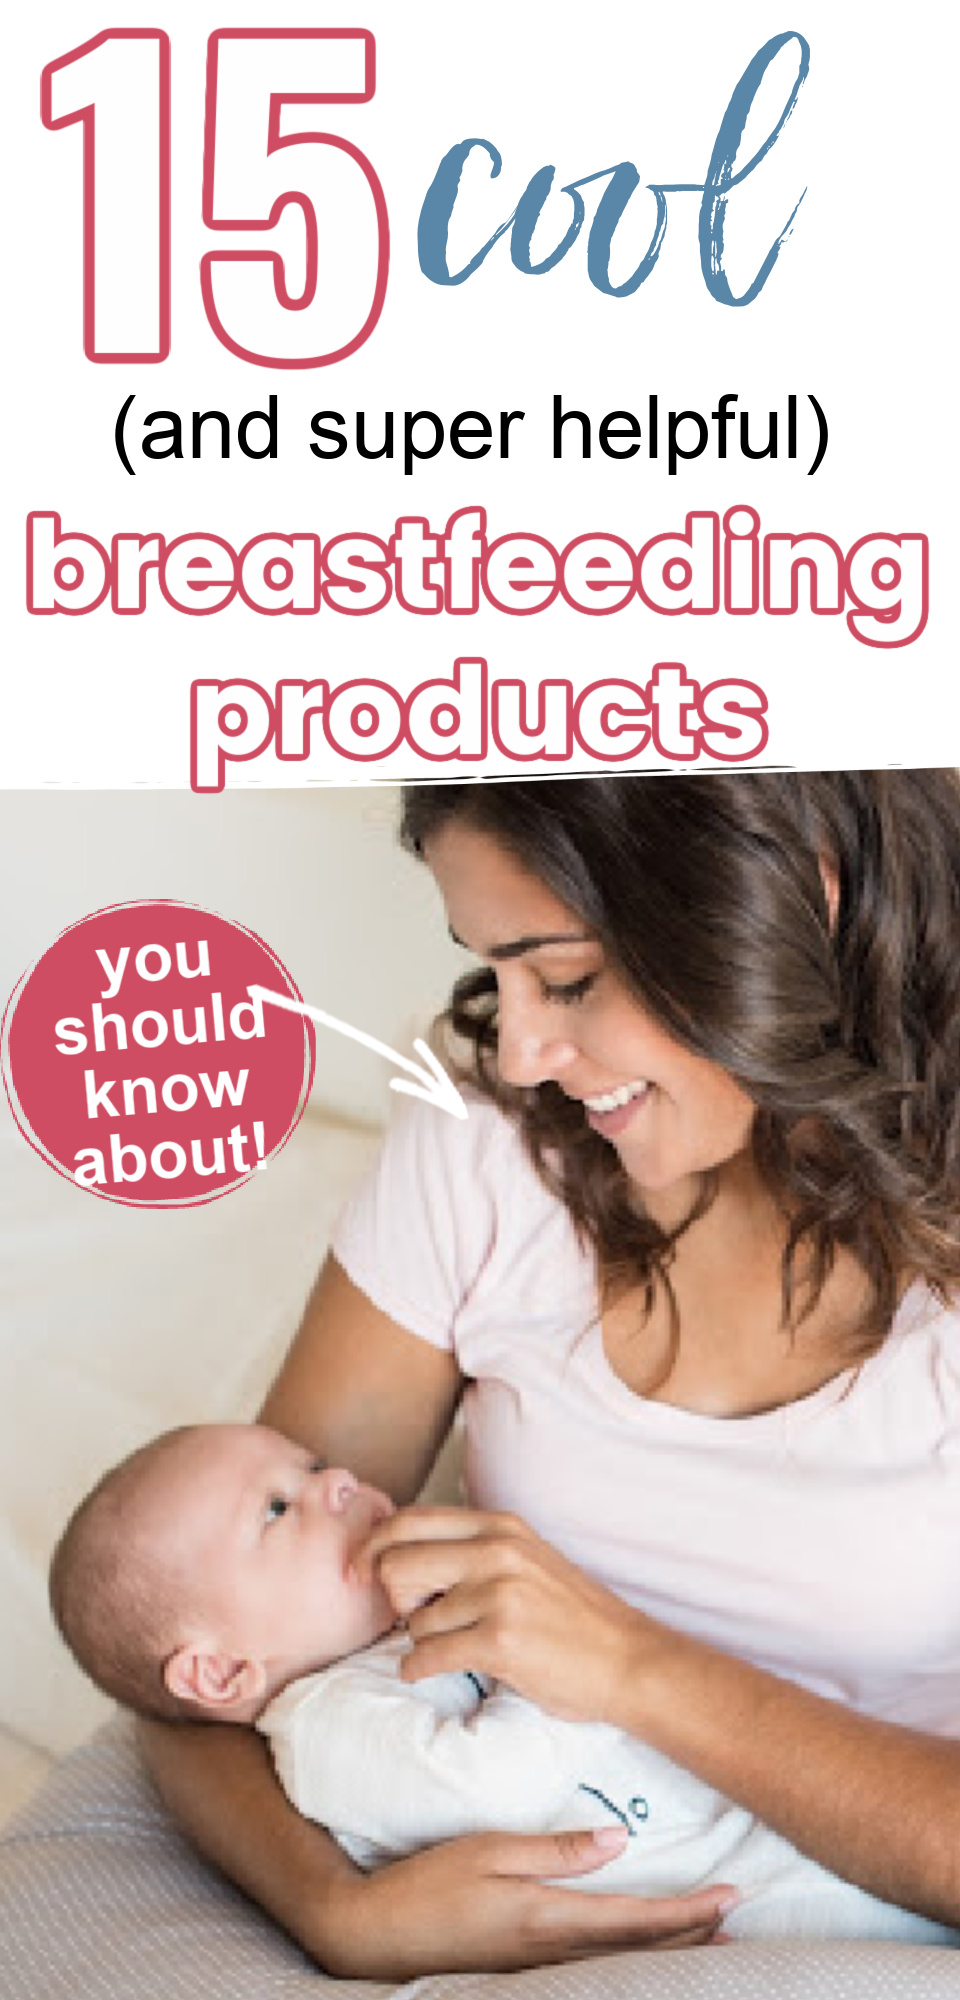 Breastfeeding Products to make breastfeeding easier? Yes, please! When preparing for the arrival of your little one you may want to know what you will need to help with breastfeeding. This list is full of amazing, helpful products that will make breastfeeding easier for you!